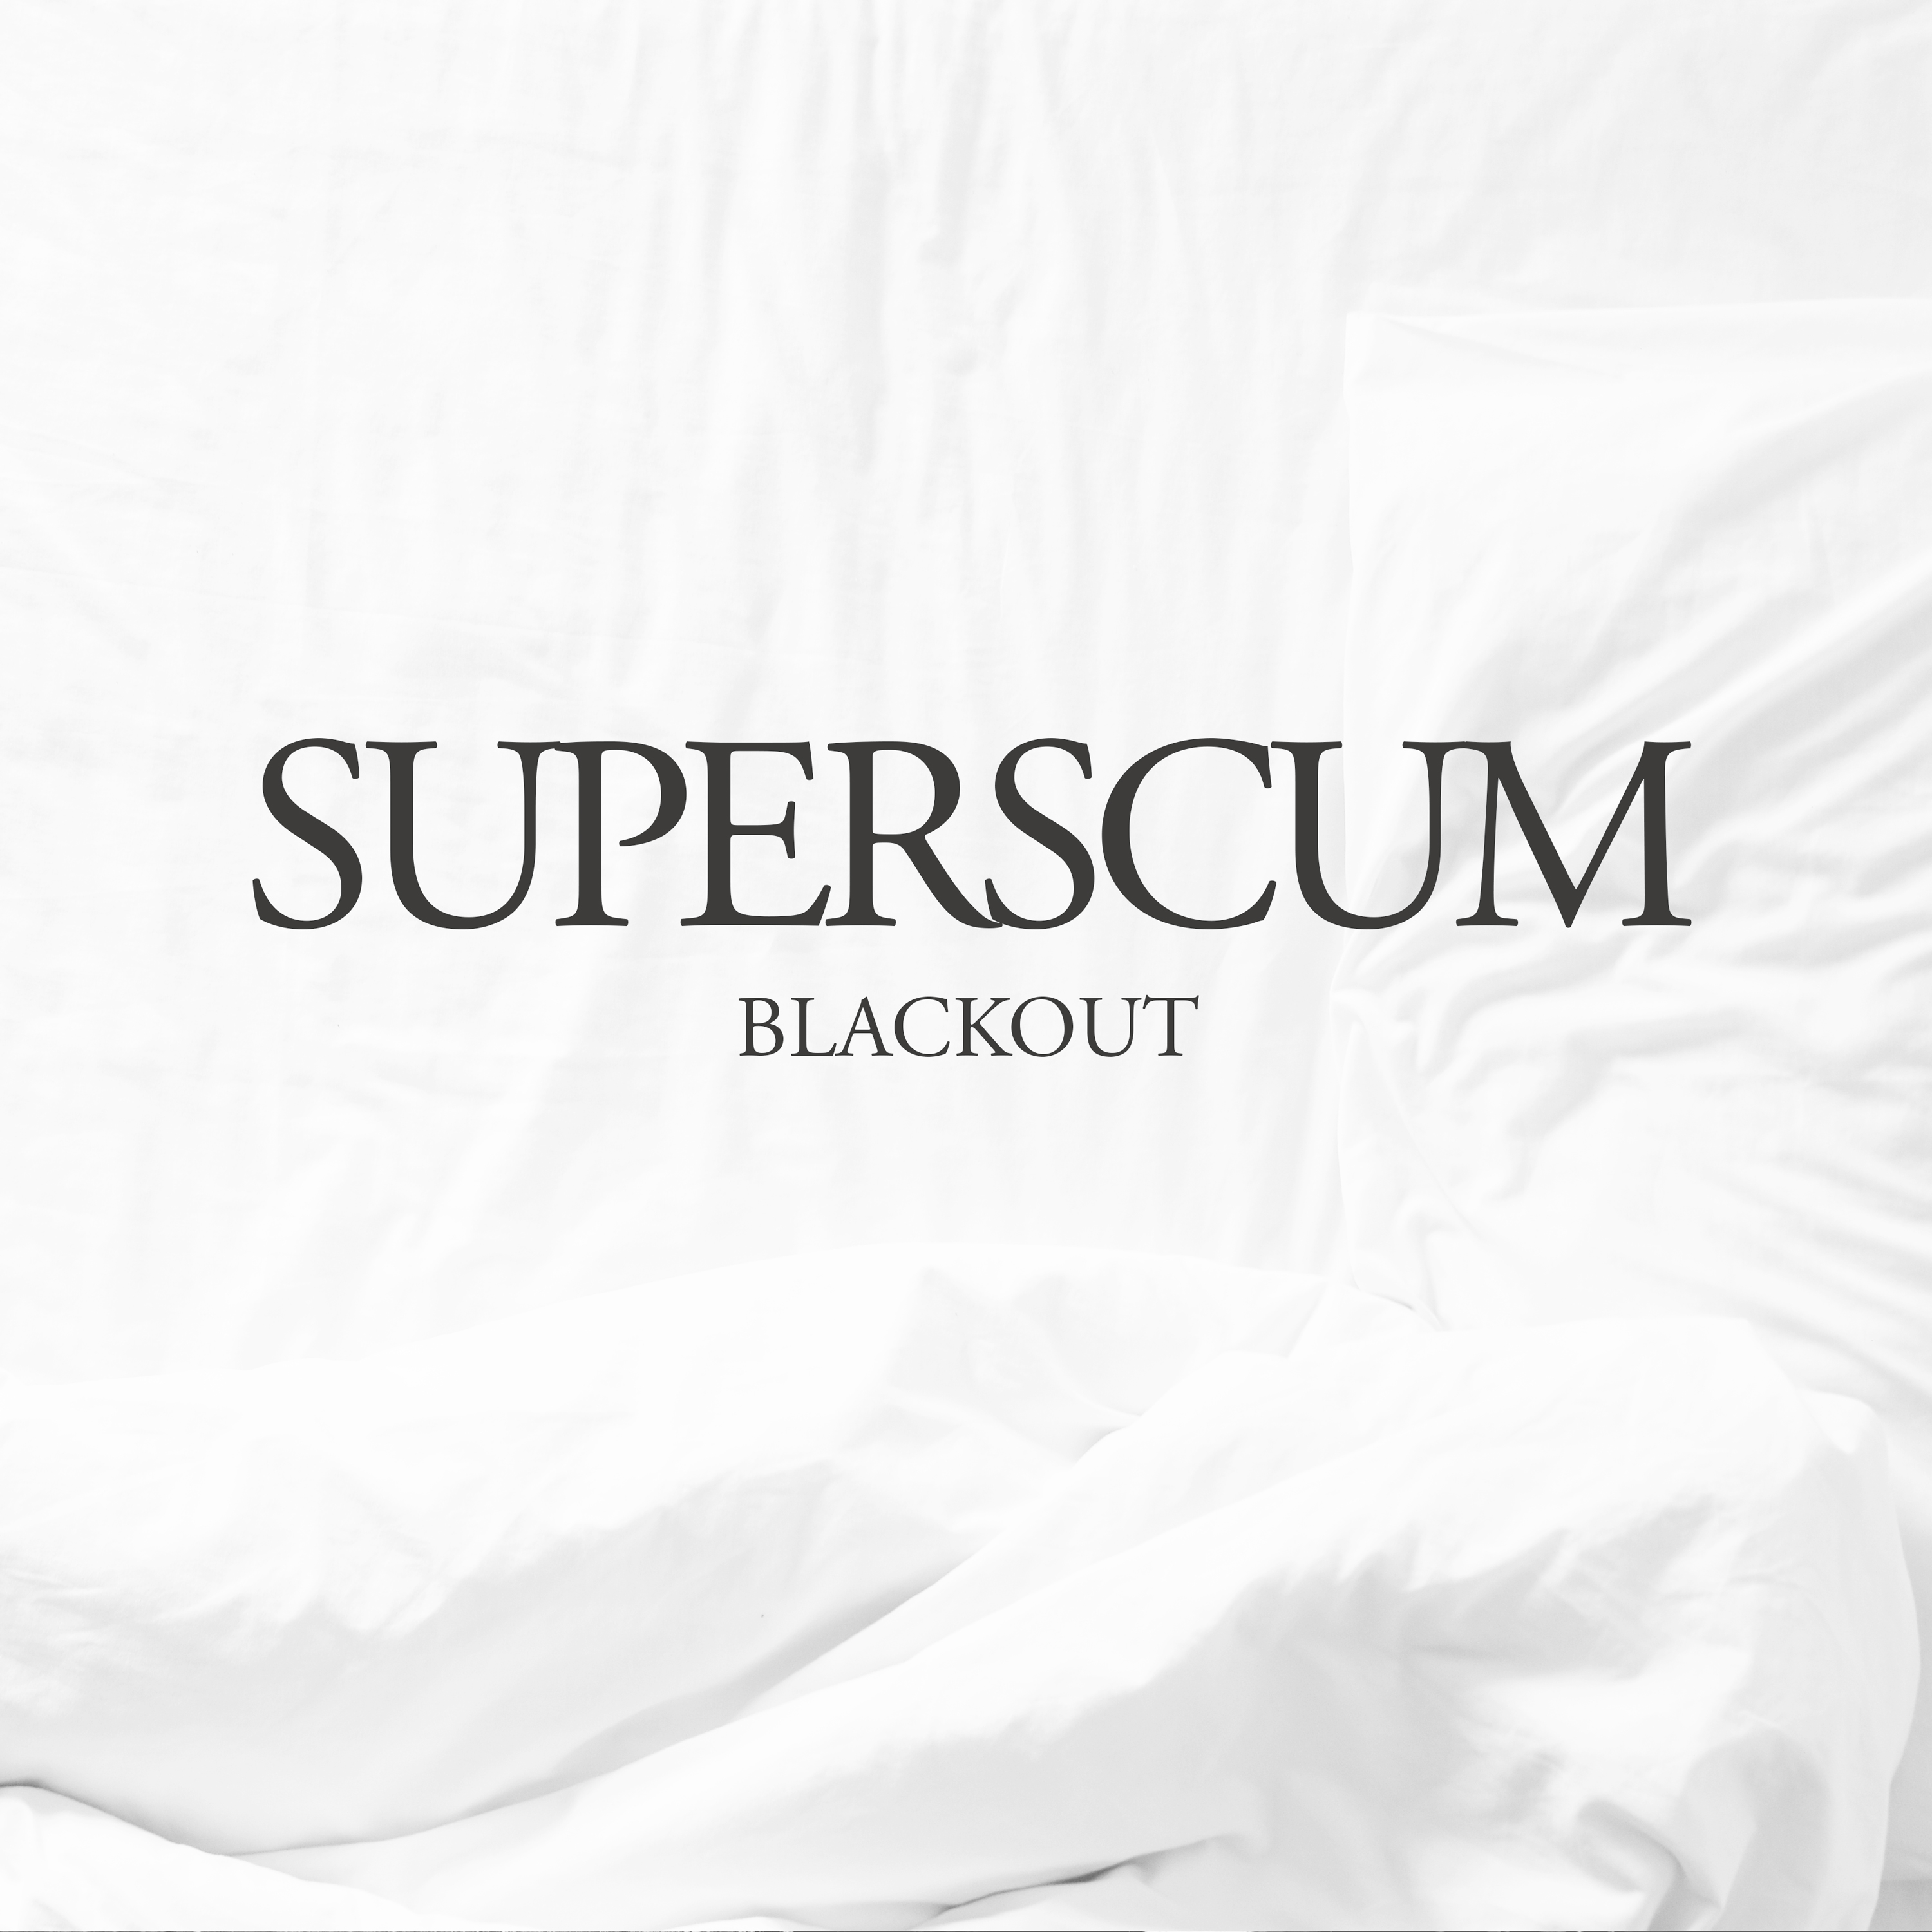 Superscum - Blackout